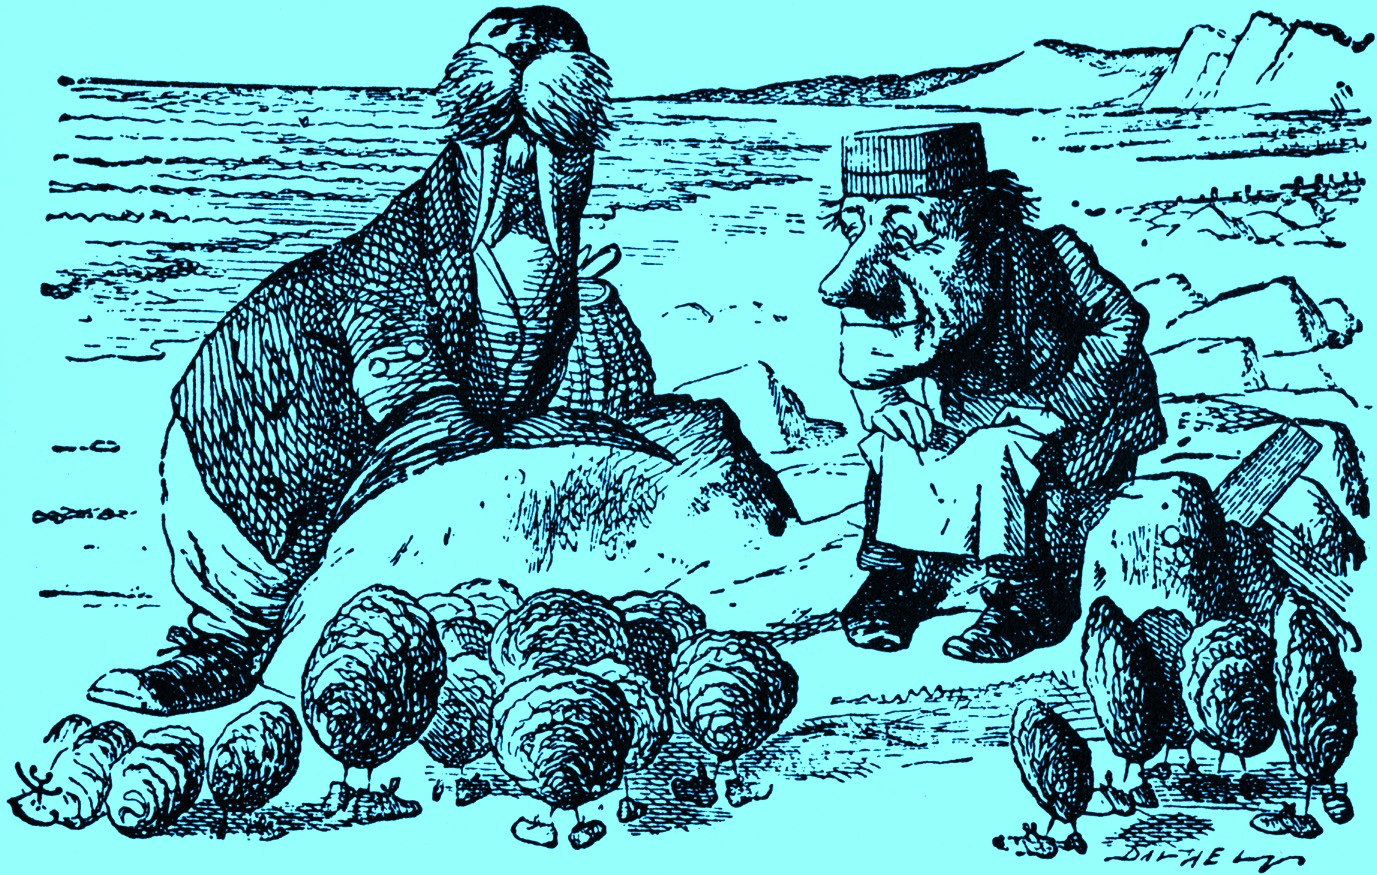 The Walrus and the Carpenter Were walking close at hand; They wept like anything to see Such quantities of sand: If this were only cleared away,' They said, it would be grand!' 'If seven maids with seven mops Swept it for half a year, Do you suppose,' the Walrus said, That they could get it clear?' I doubt it,' said the Carpenter, And shed a bitter tear. ... 'The time has come,' the Walrus said, To talk of many things: Of shoes — and ships — and sealing-wax — Of cabbages — and kings — And why the sea is boiling hot — And whether pigs have wings.' Winships! That's your cue!